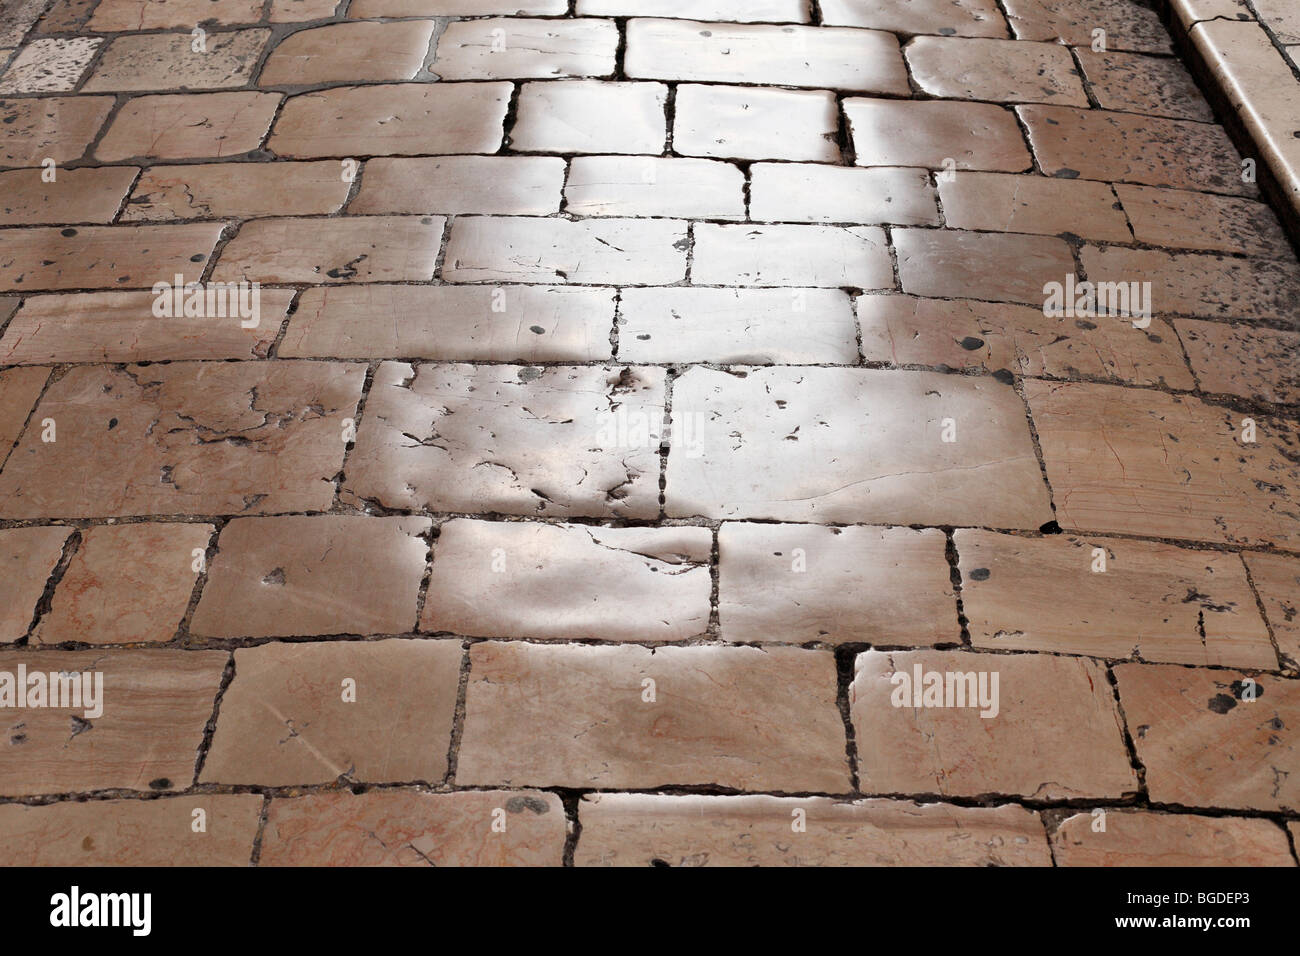 Old stone pavement in the old town of Zadar, Dalmatia, Croatia, Europe - Stock Image